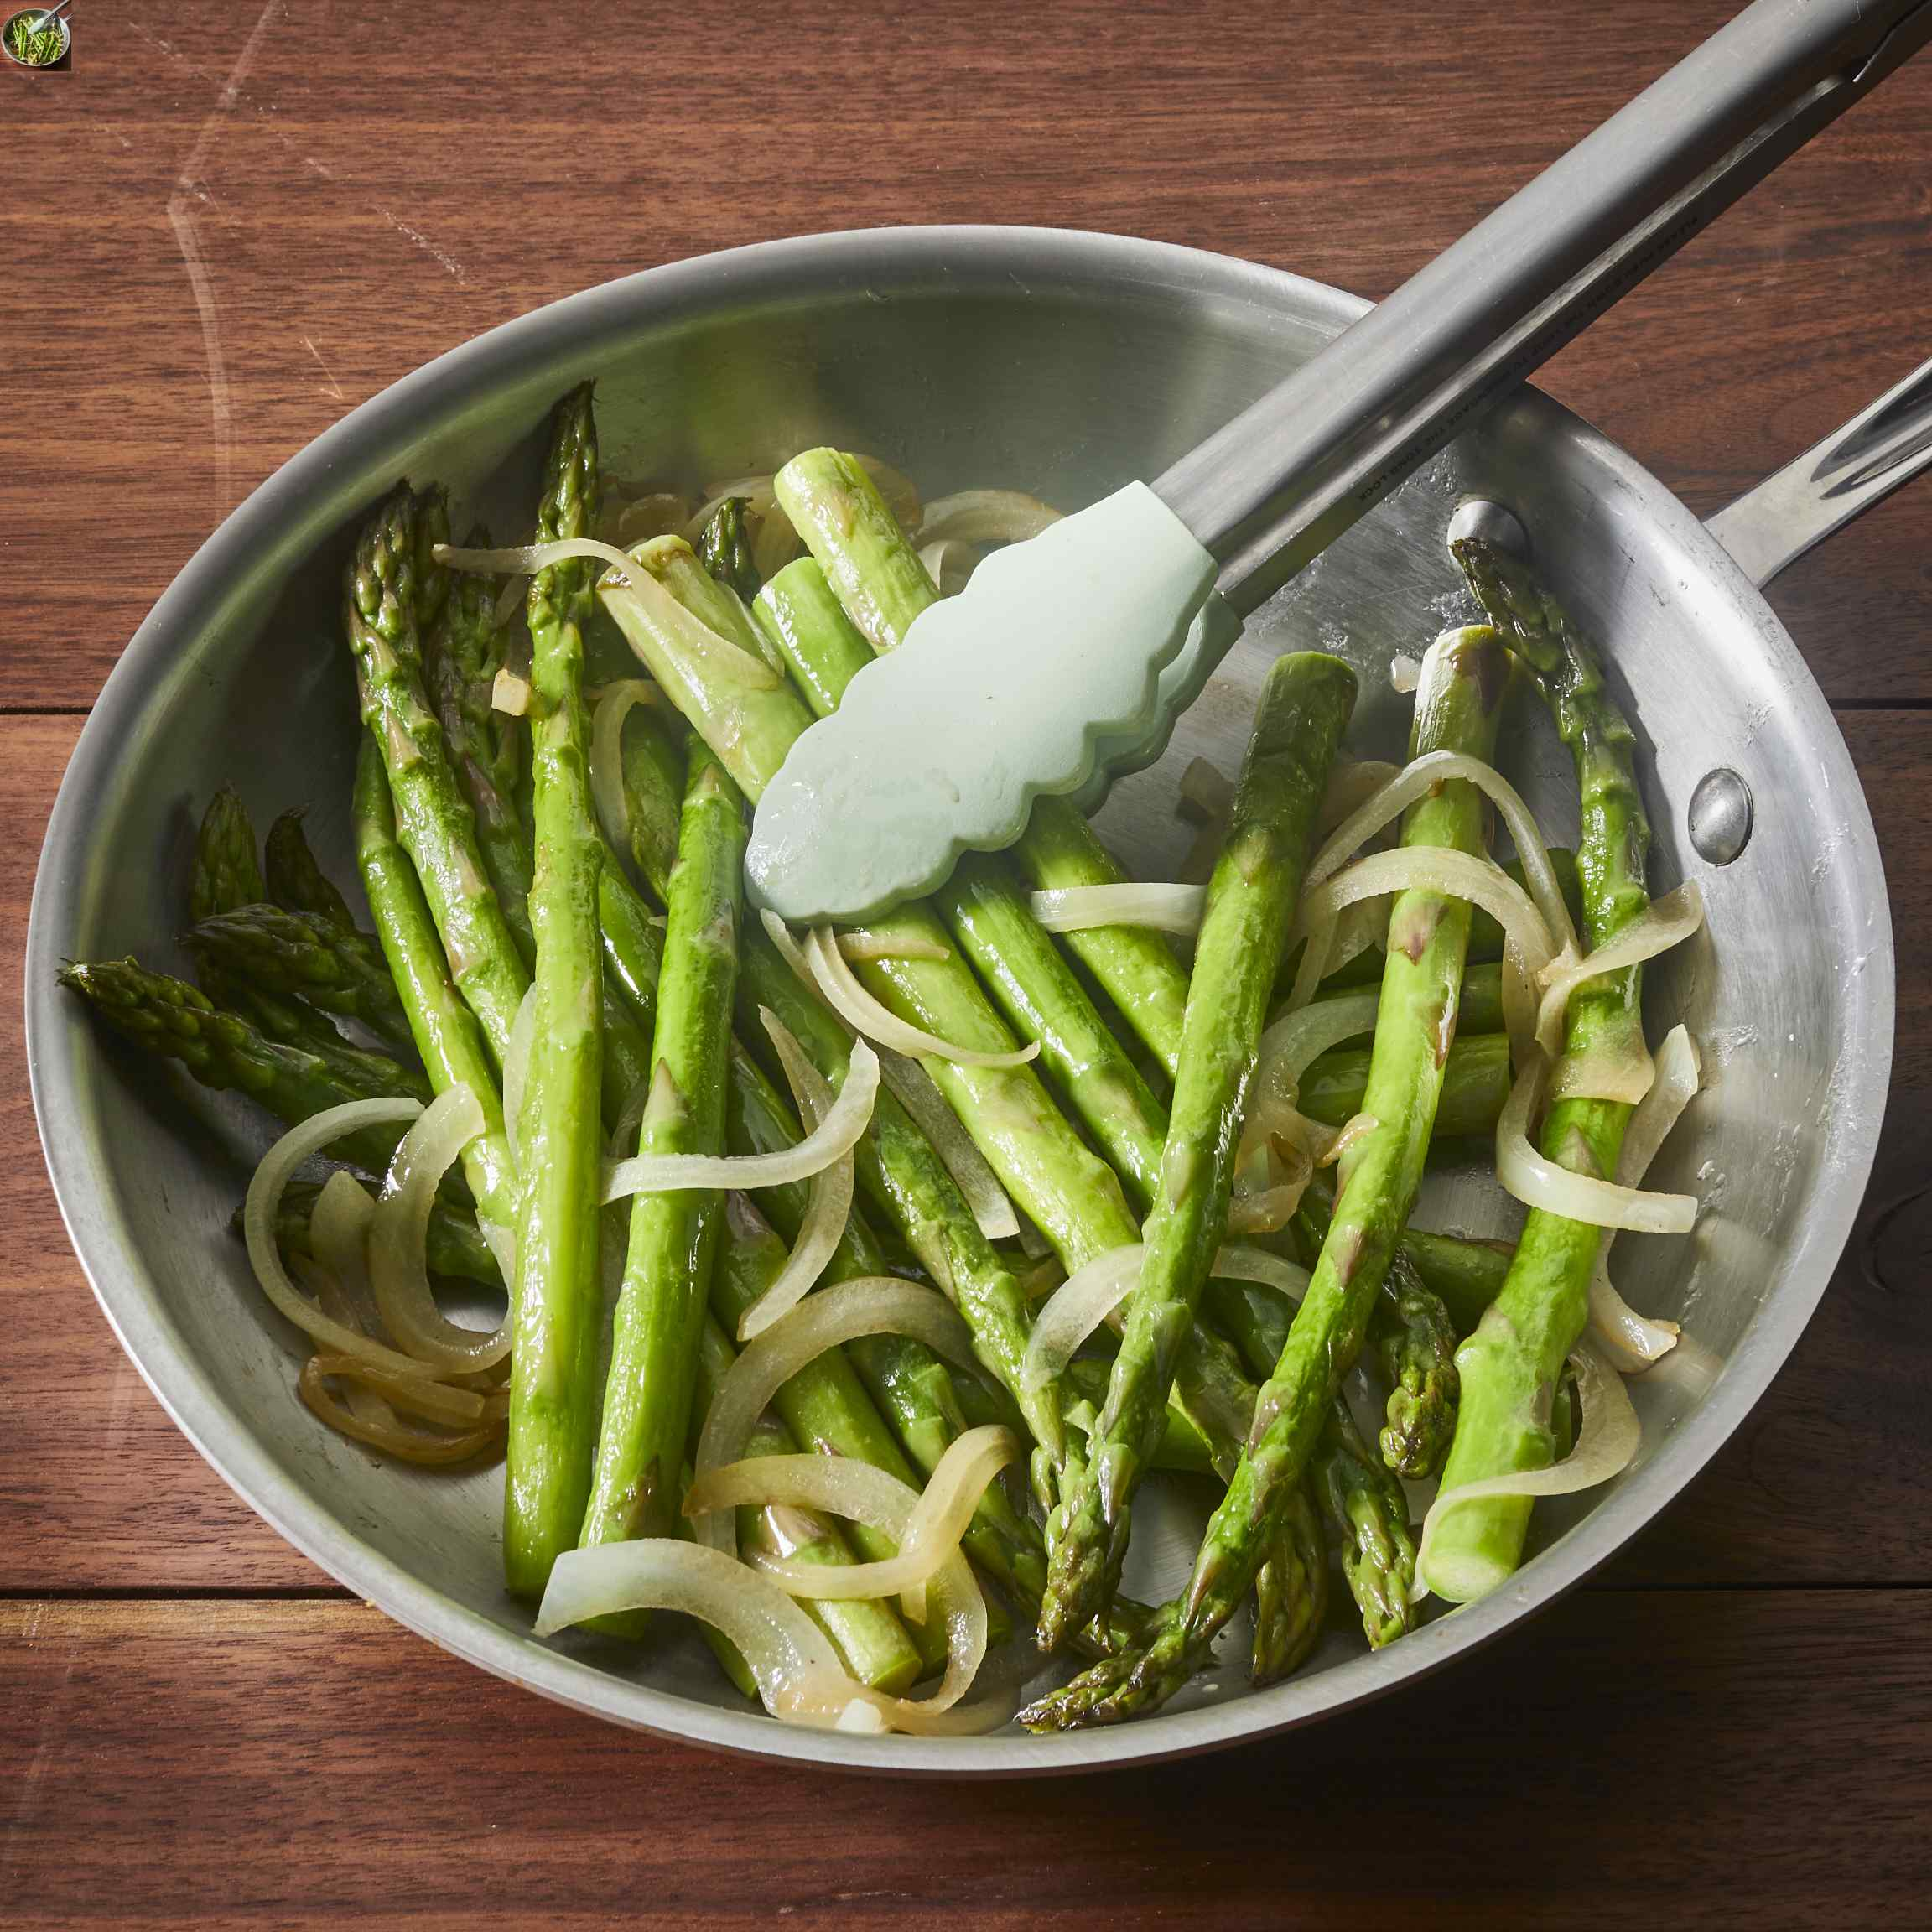 Pan-Fried Asparagus with Onions Trusted Brands